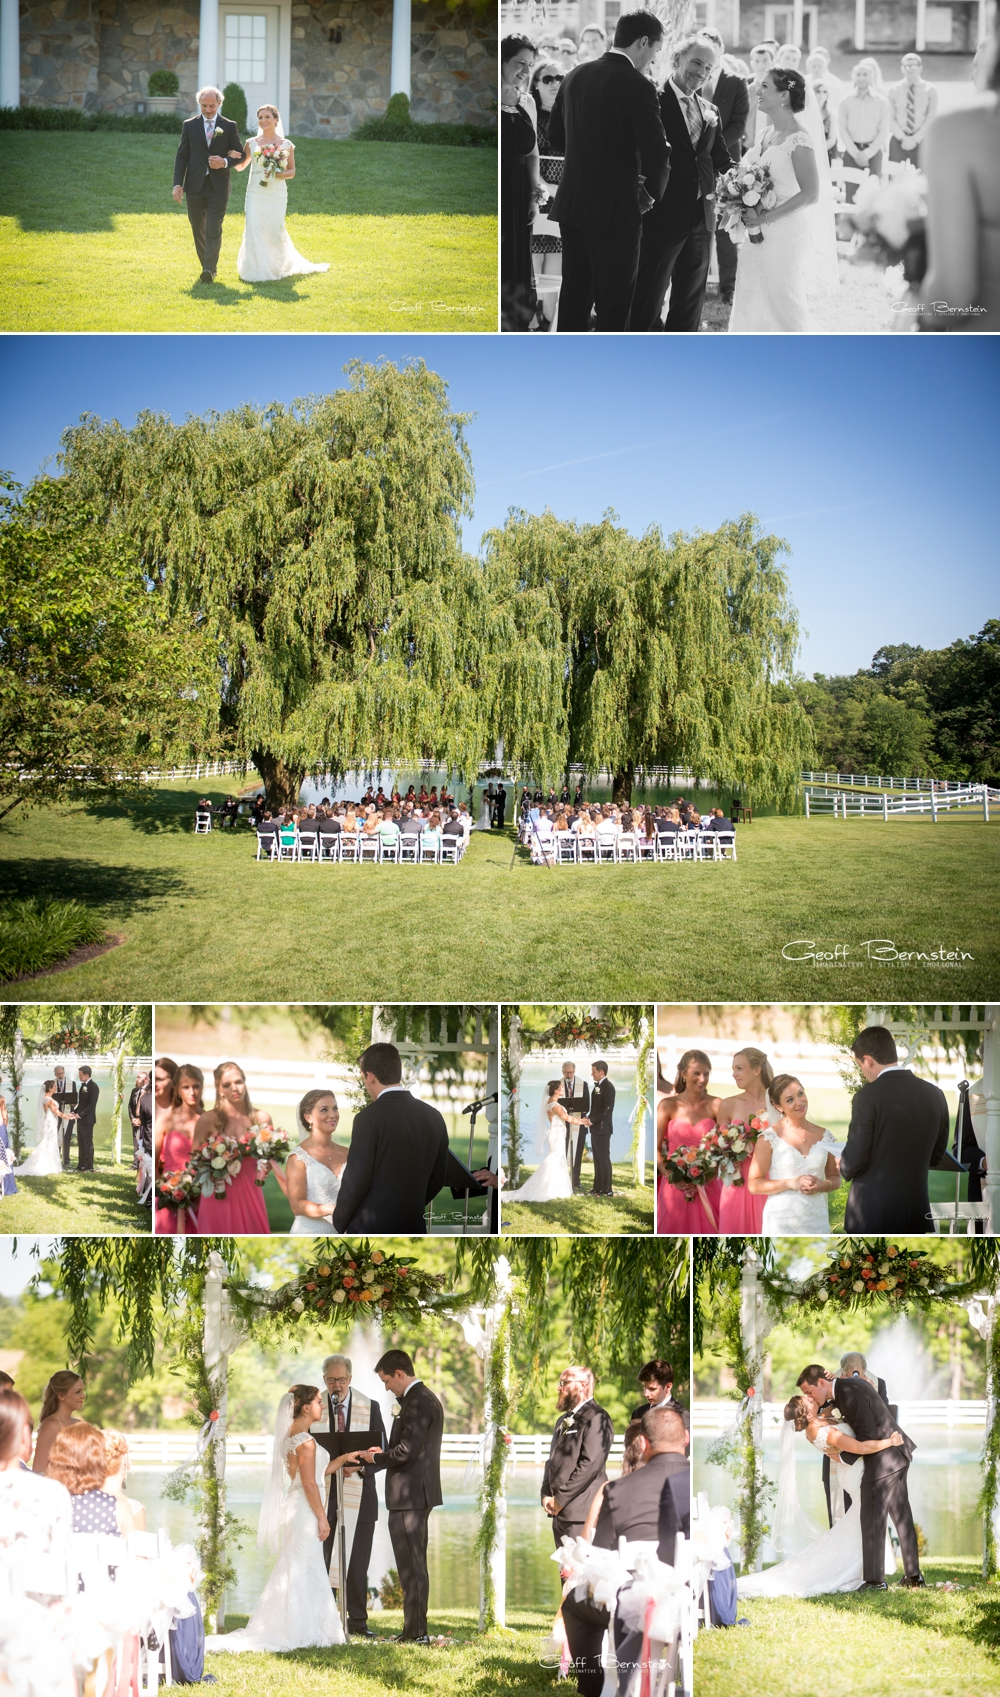 Sealover White Wedding 10.jpg